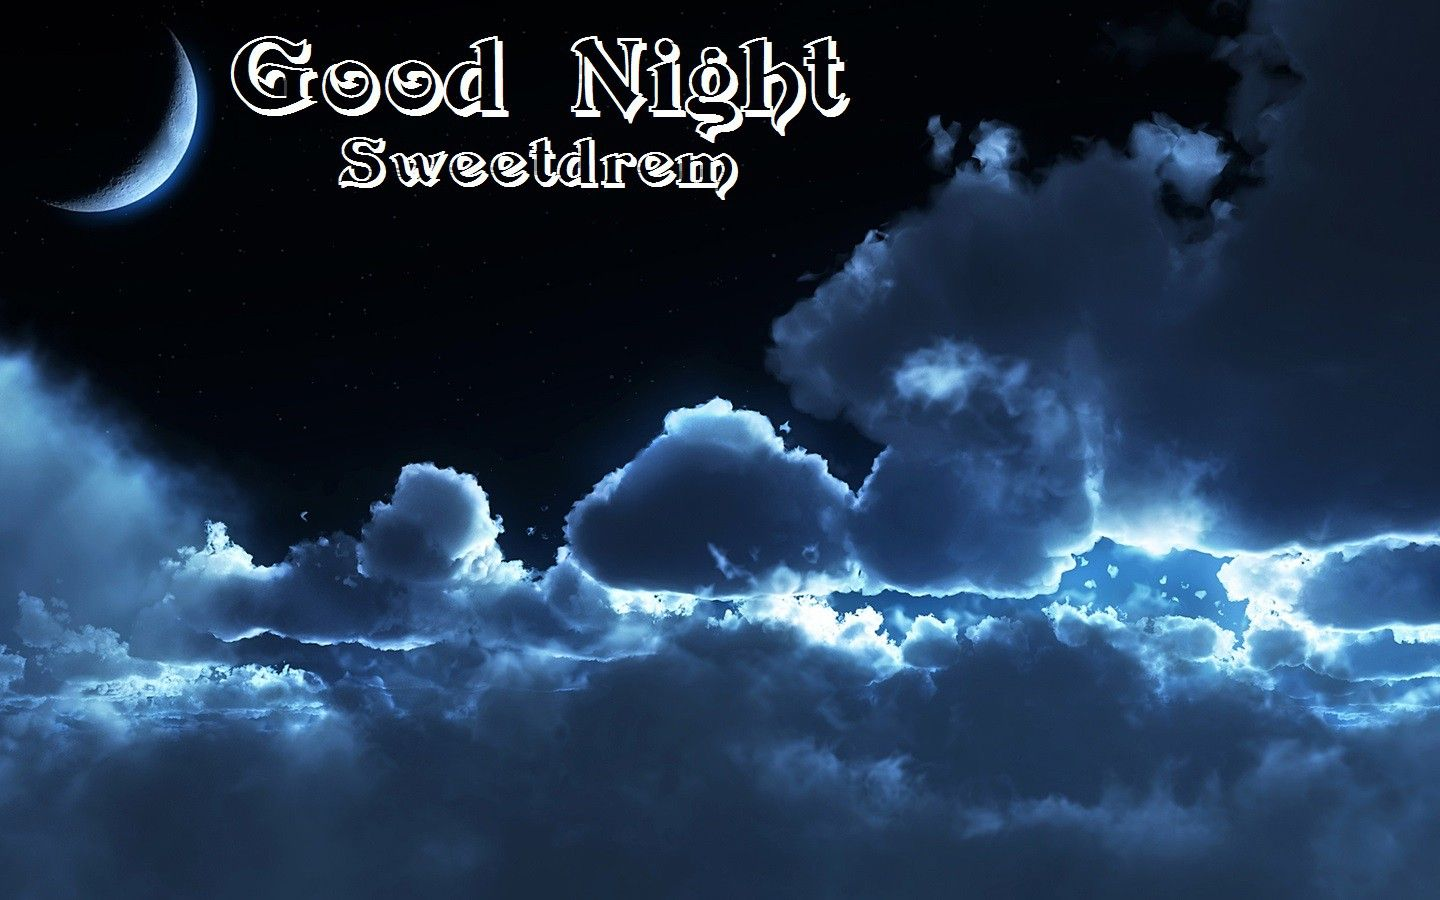 Wallpaper download good night - Free Hd Sky Good Night Wishes Wallpapers Download